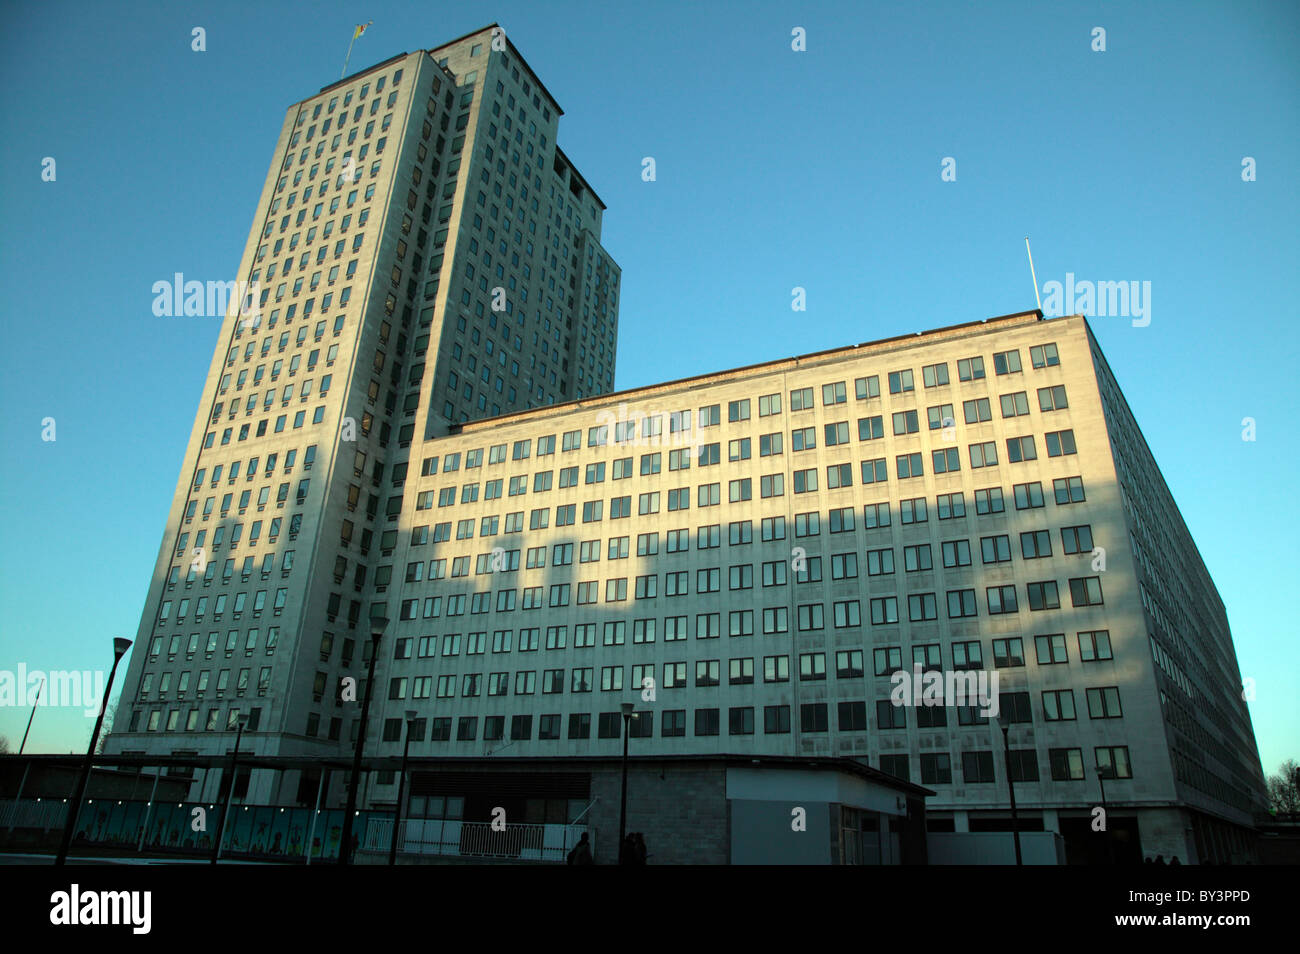 Image close to sunset, of the Shell Centre, Belvedere Road, London Borough of Lambeth - Stock Image